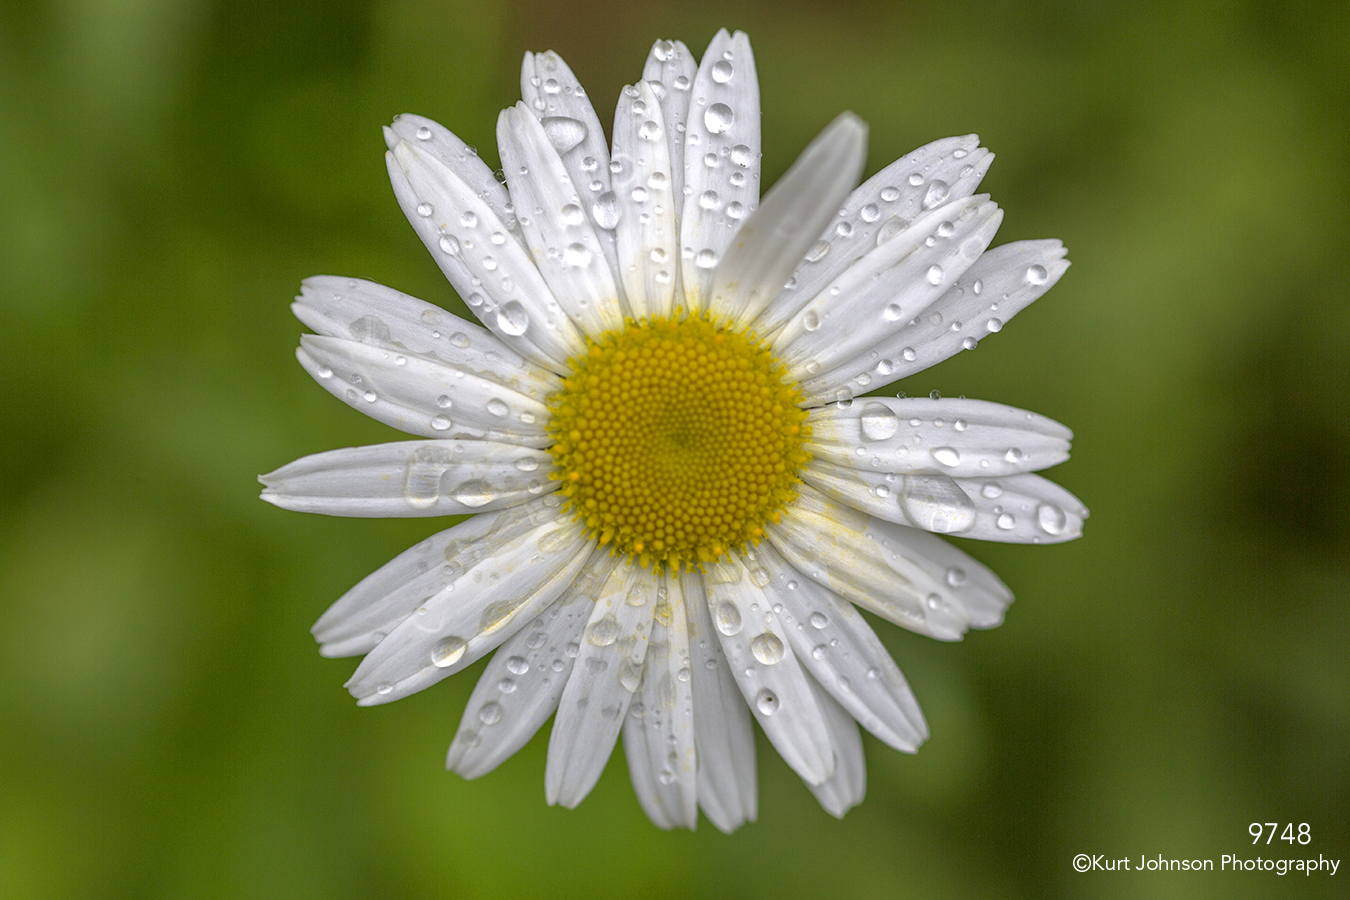 flower white rain drops chamomile close up texture details petals